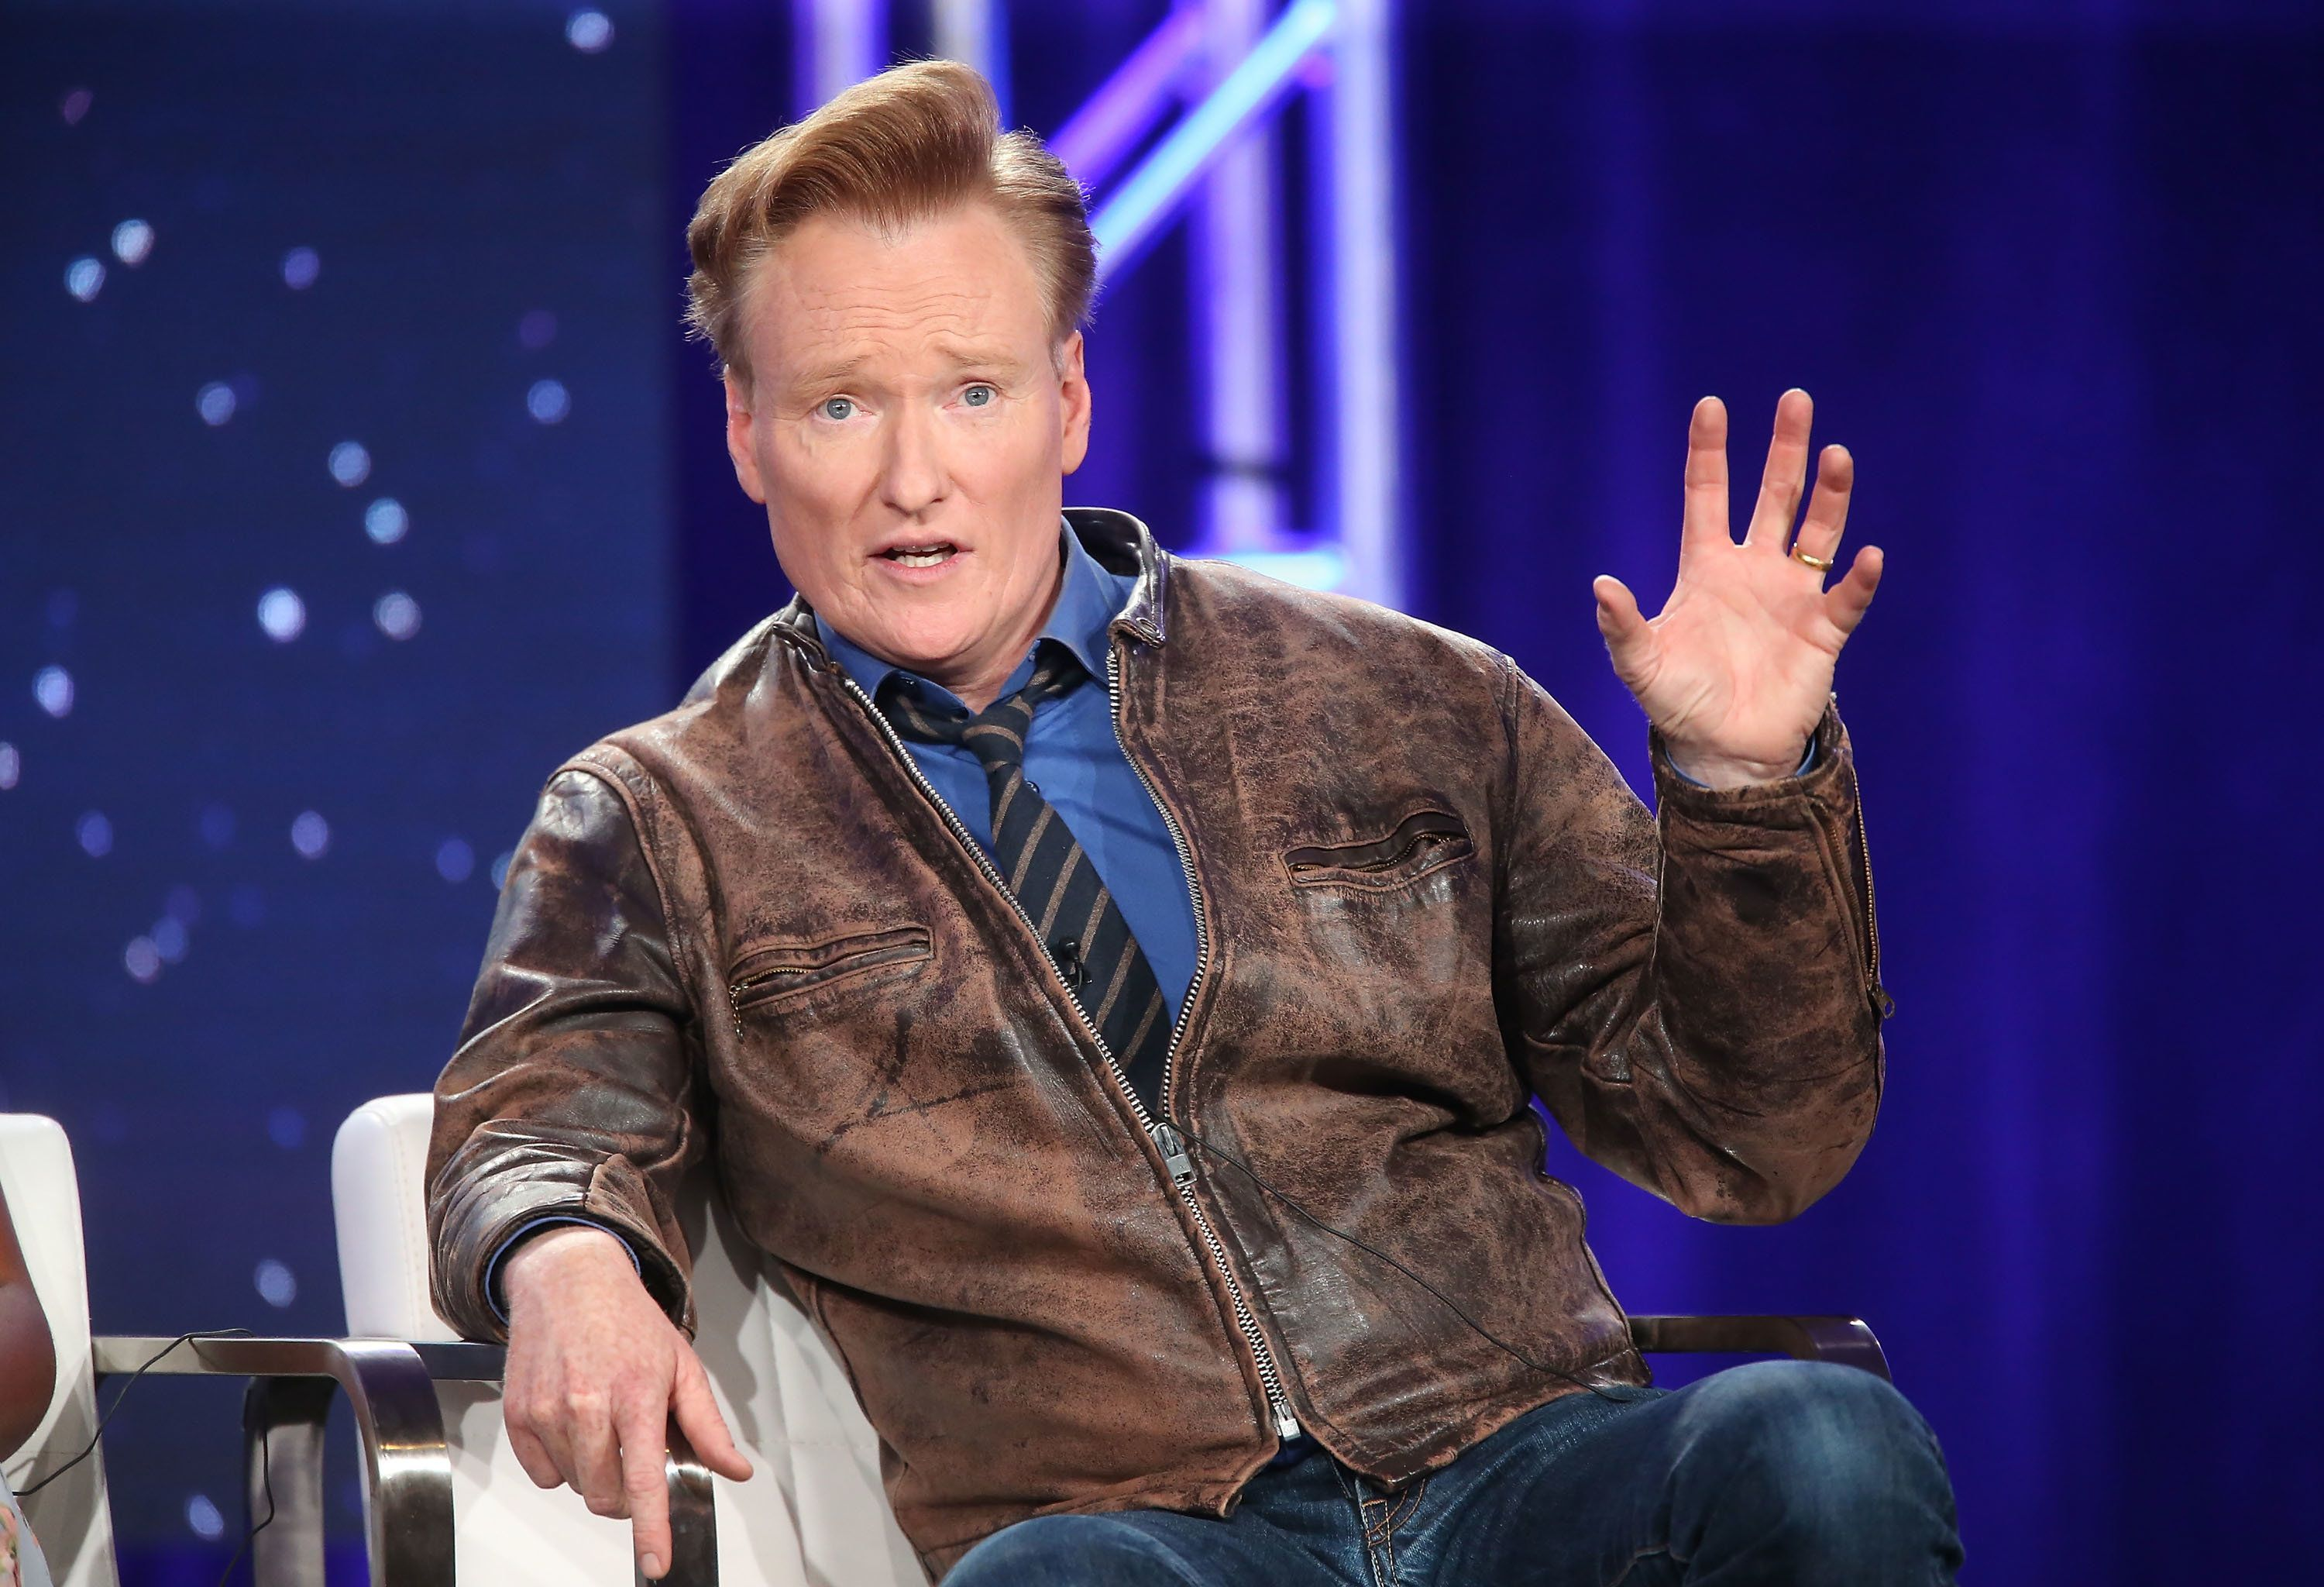 PASADENA, CA - JANUARY 11: Executive producer Conan O'Brien of the TBS television show Final Space speaks onstage during the Turner portion of the 2018 Winter Television Critics Association Press Tour at The Langham Huntington, Pasadena on January 11, 2018 in Pasadena, California.  (Photo by Frederick M. Brown/Getty Images)